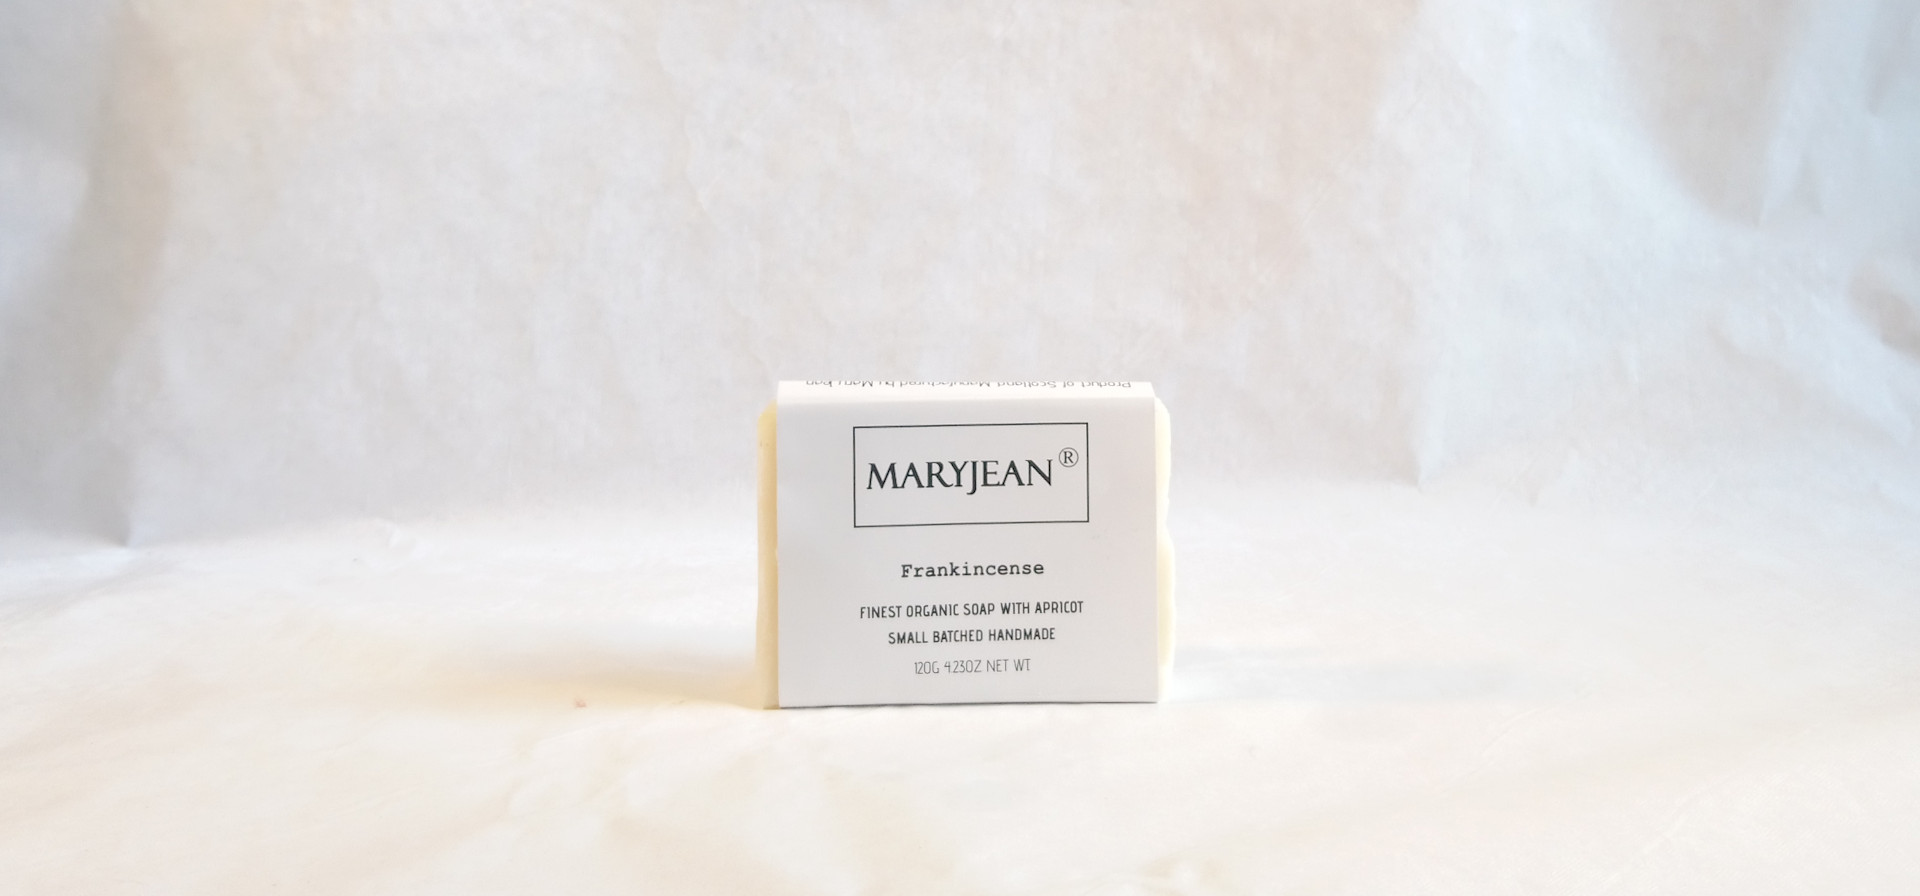 Twin Pack 2 Organic Scottish Frankincense Plastic And Sulphate Free Soaps Handmade With Apricot en_GB